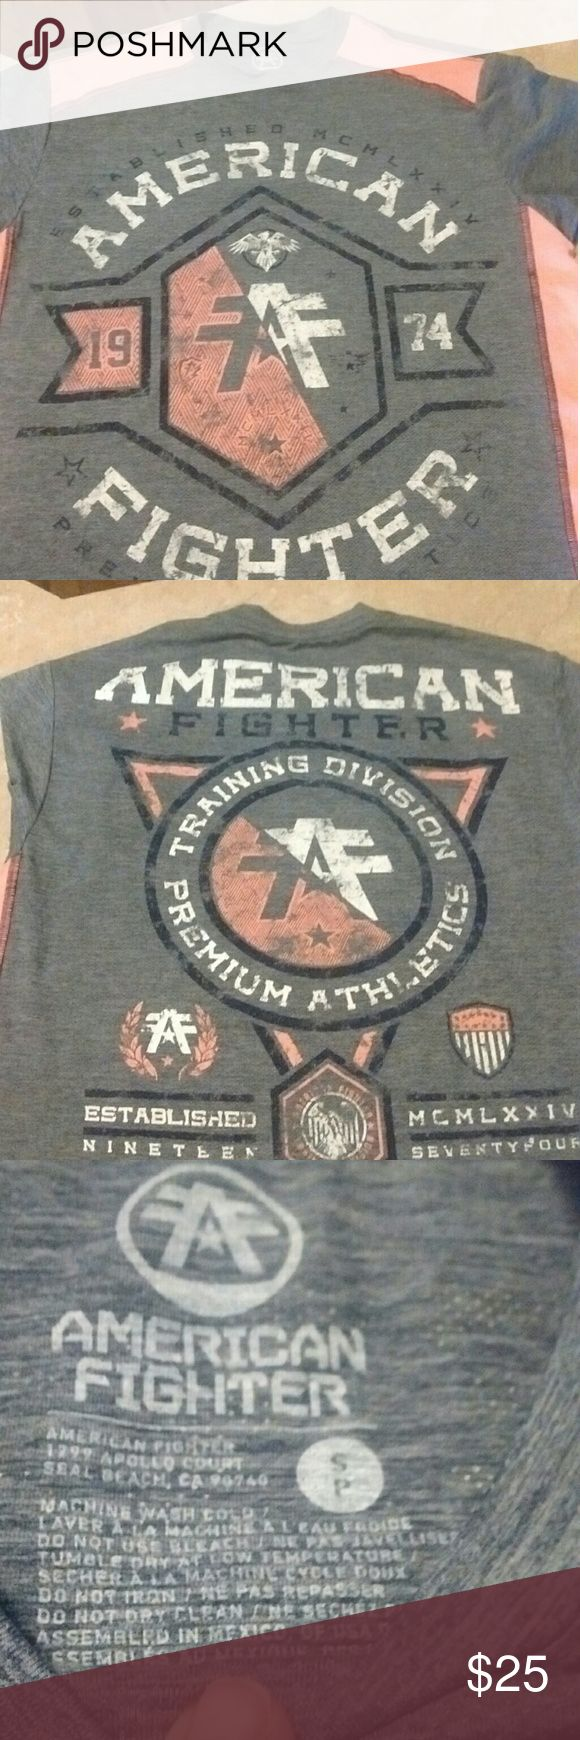 Men's American fighter t-shirt Light orange/grey/white American Fighter tshirt. Purchased at Buckle. My son quickly outgrew it. American Fighter Shirts Tees - Short Sleeve